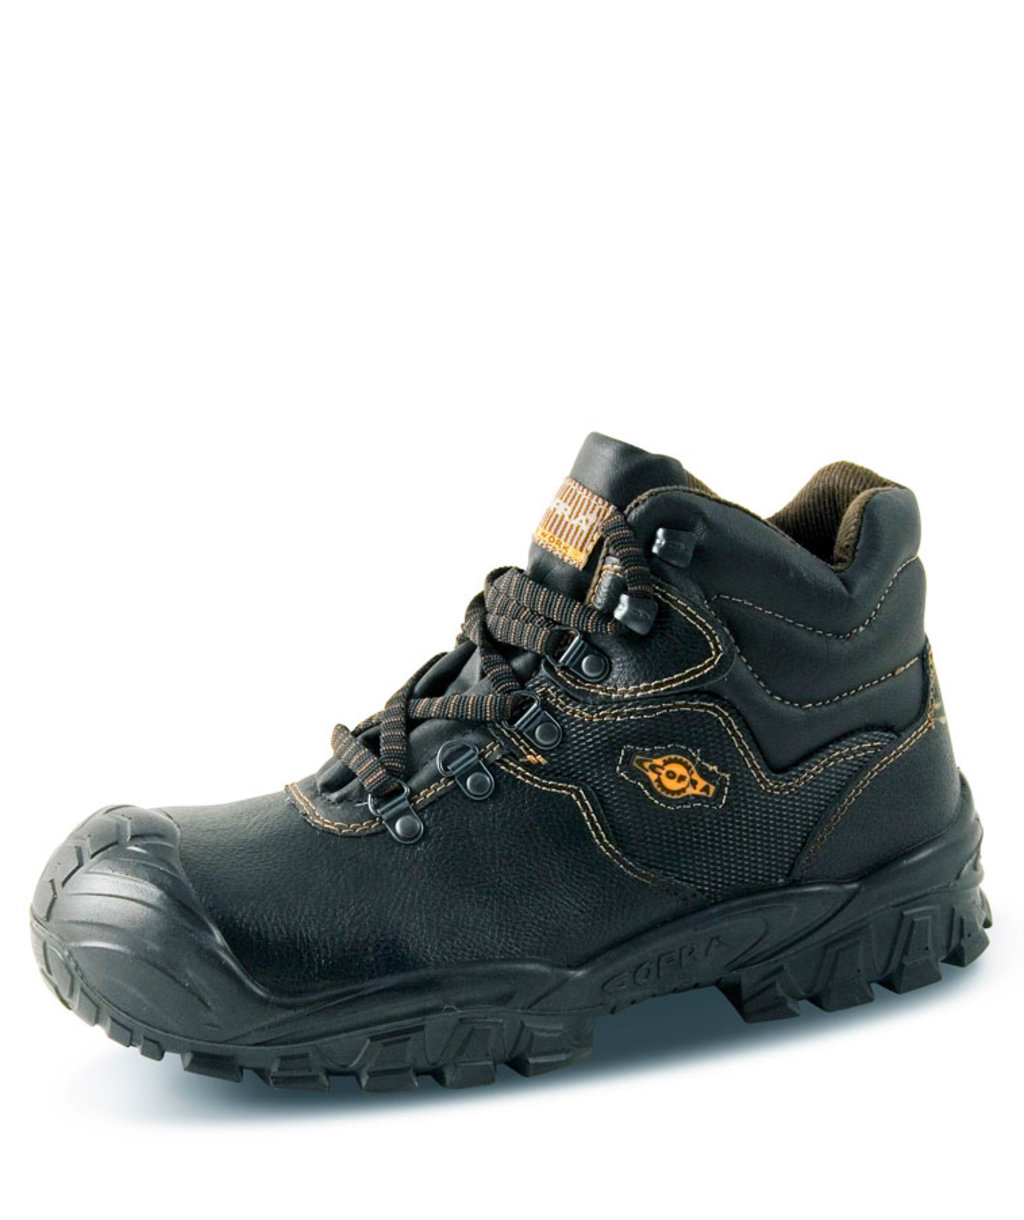 Cofra Nova safety bootees S3, Black